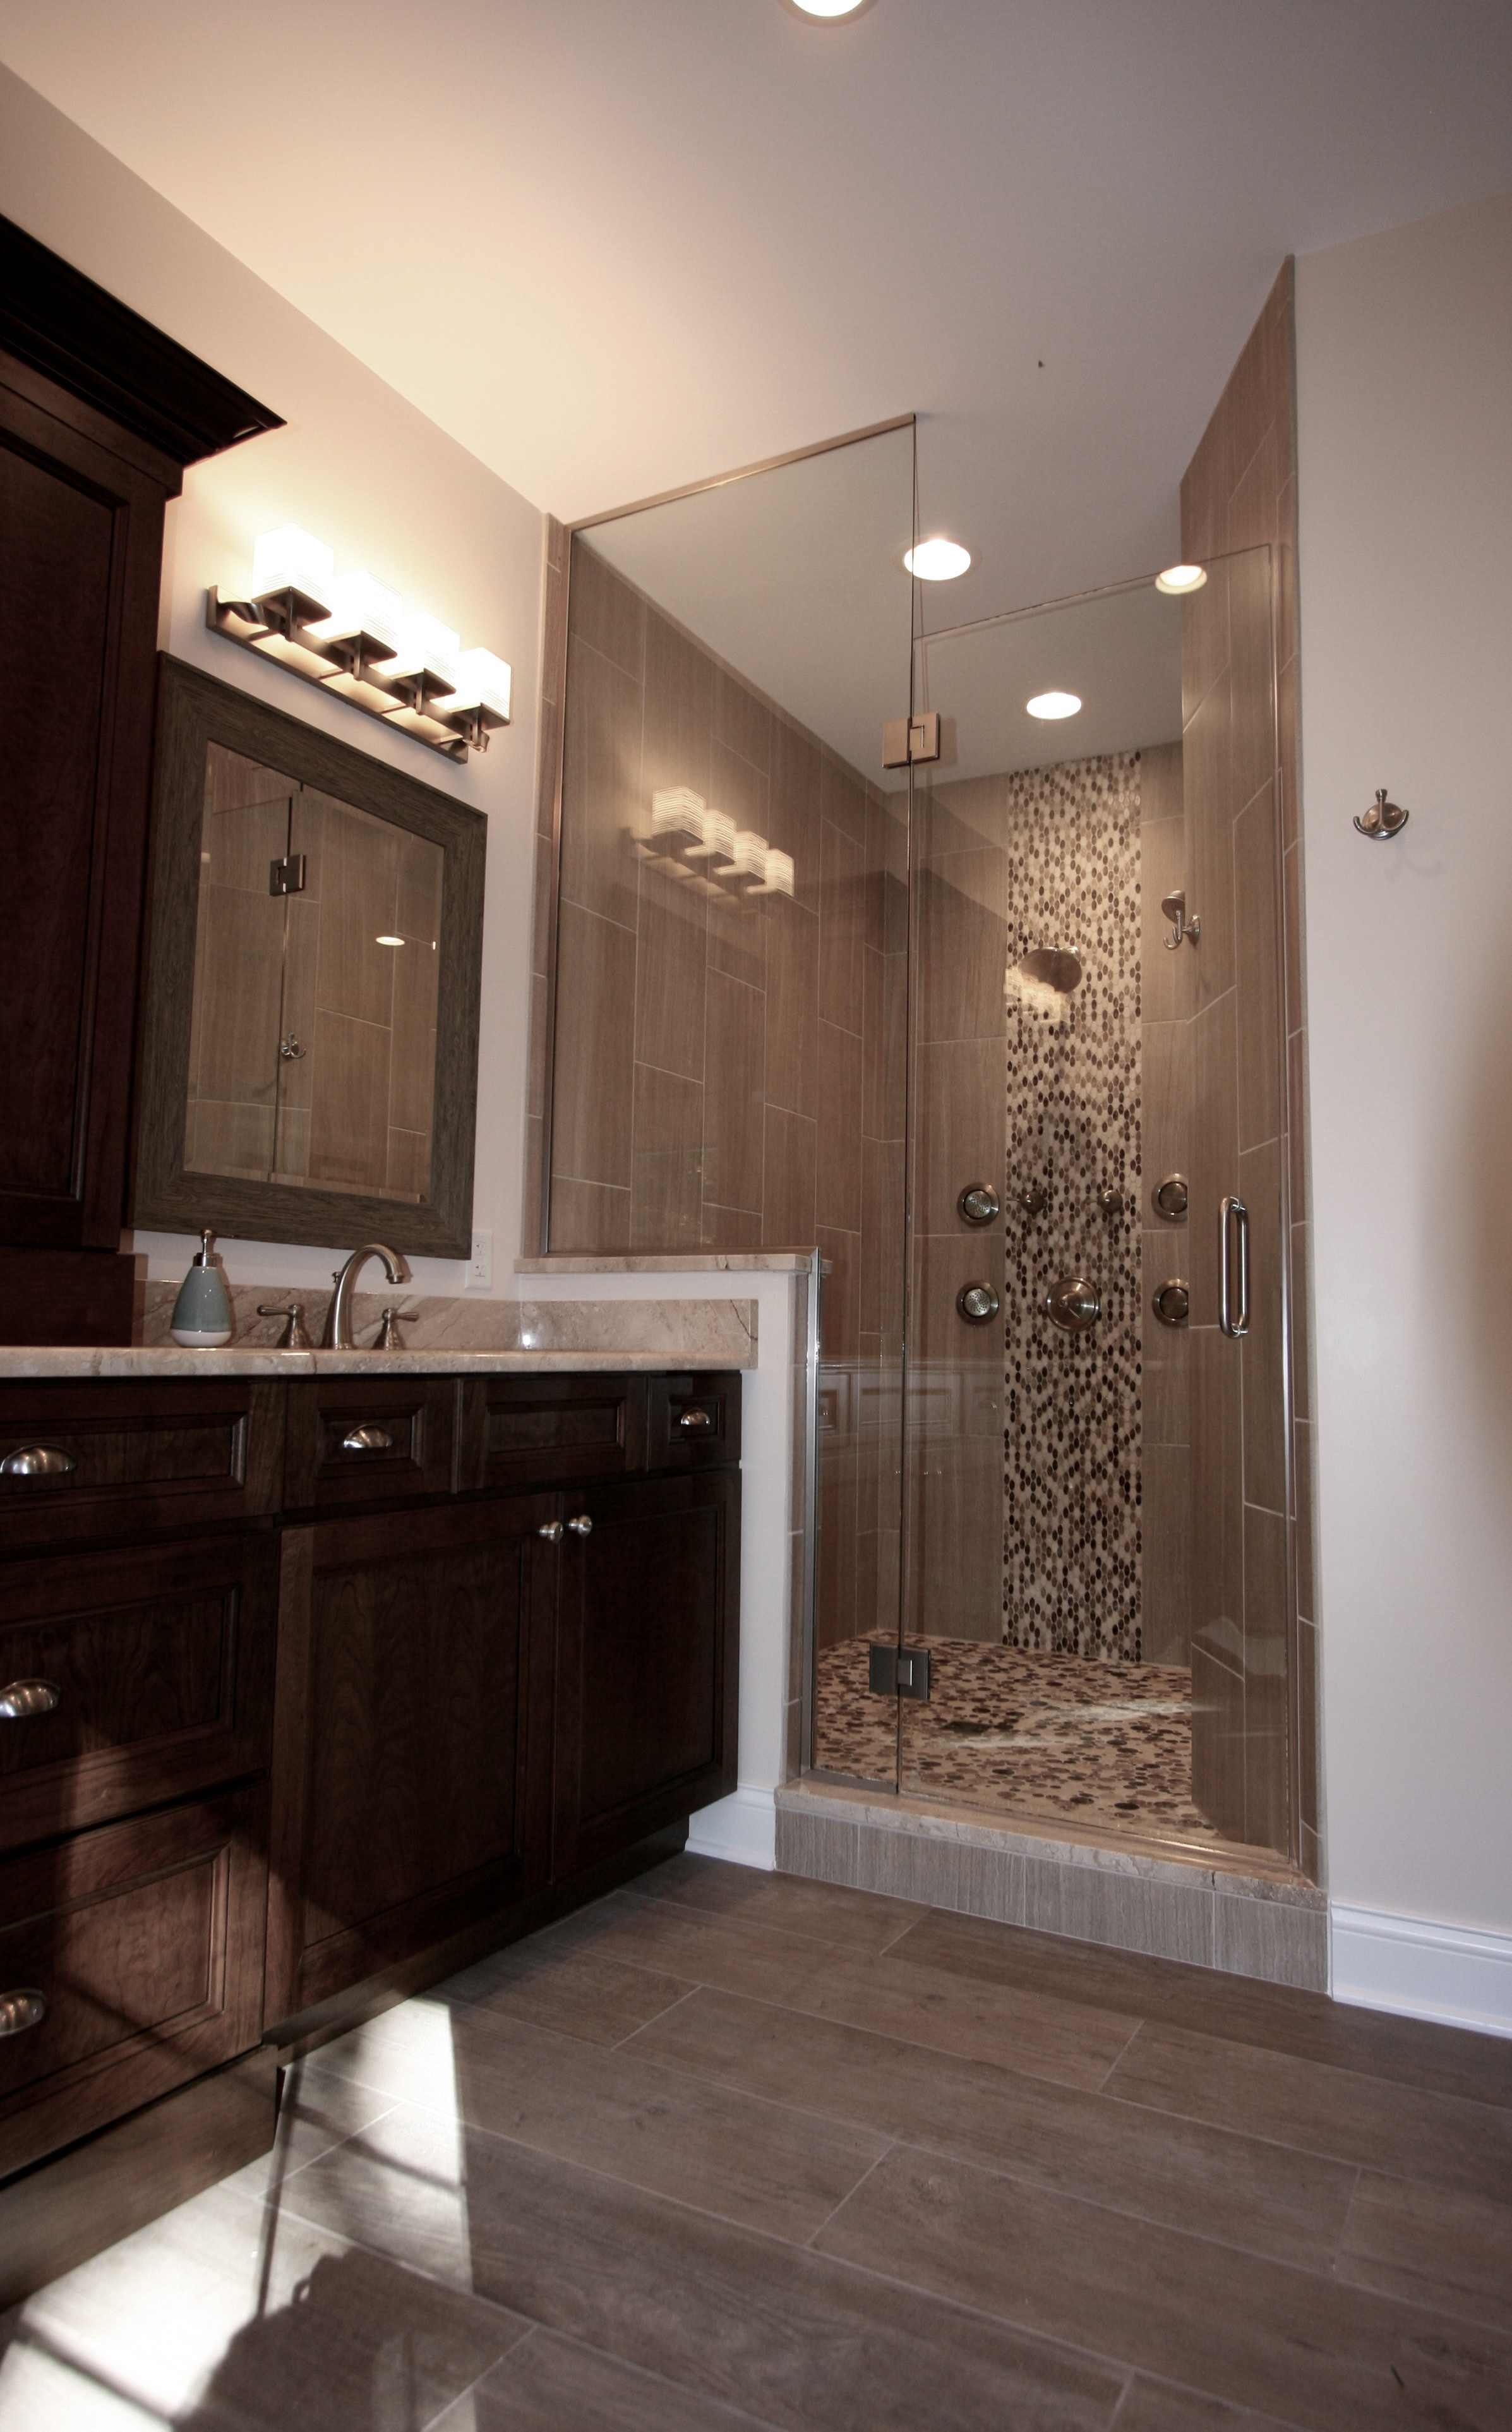 Services Archive BGH Construction - Bathroom remodeling geneva il